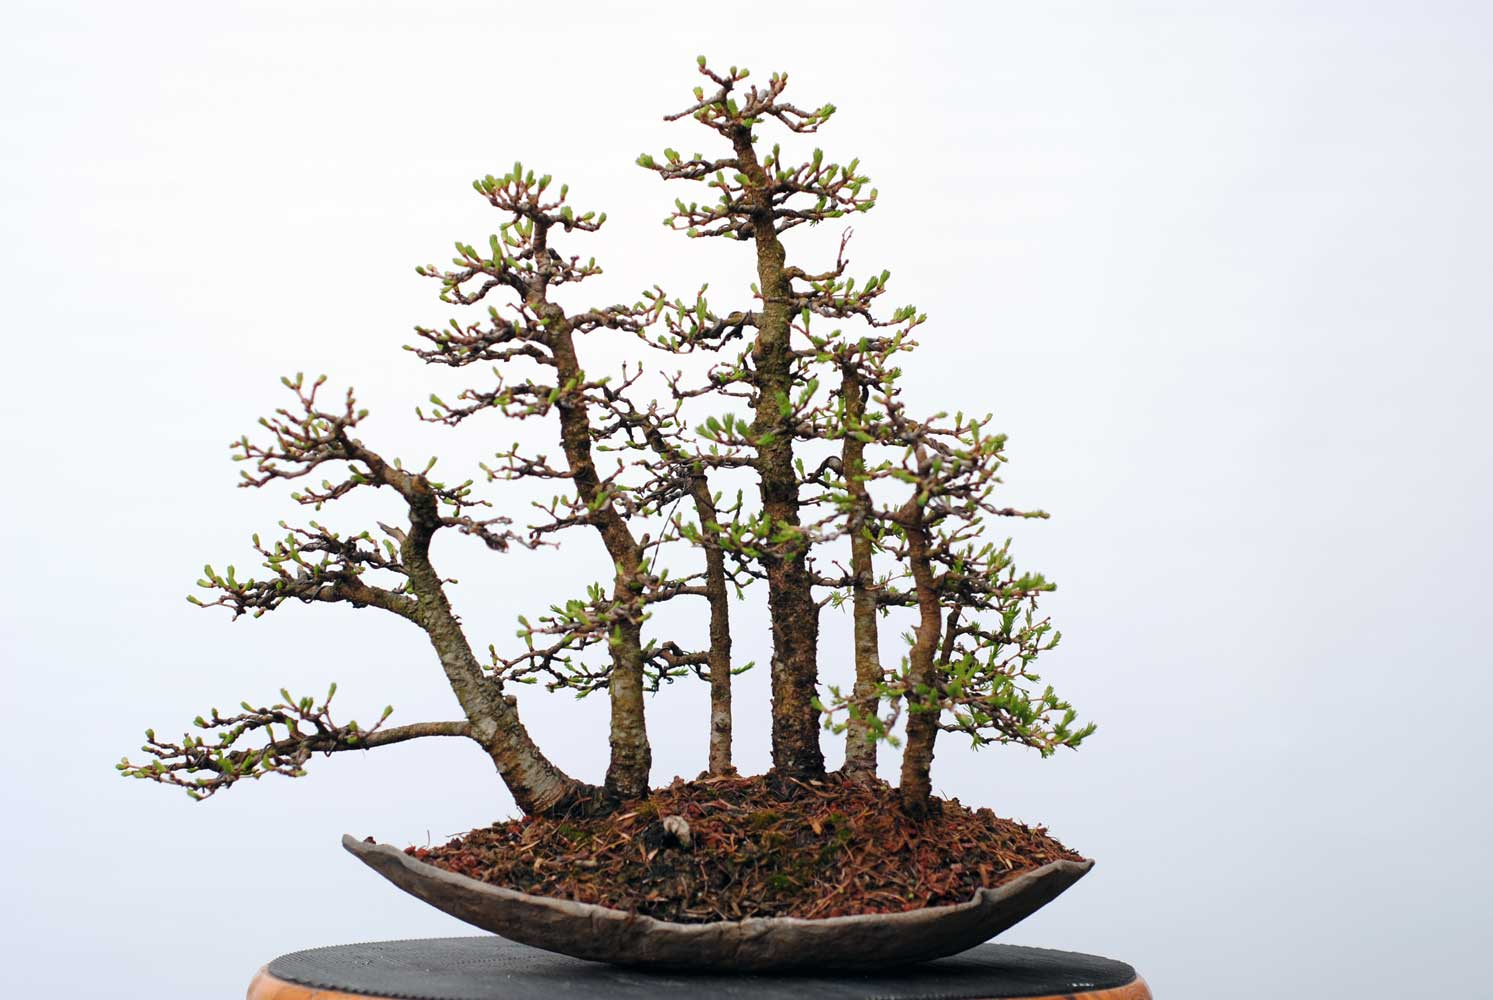 Lakeshore Bonsai In Toronto Canada Wiring Wisteria Pruning And Wire Removal Were The Normal Spring Chores For This Little Forest